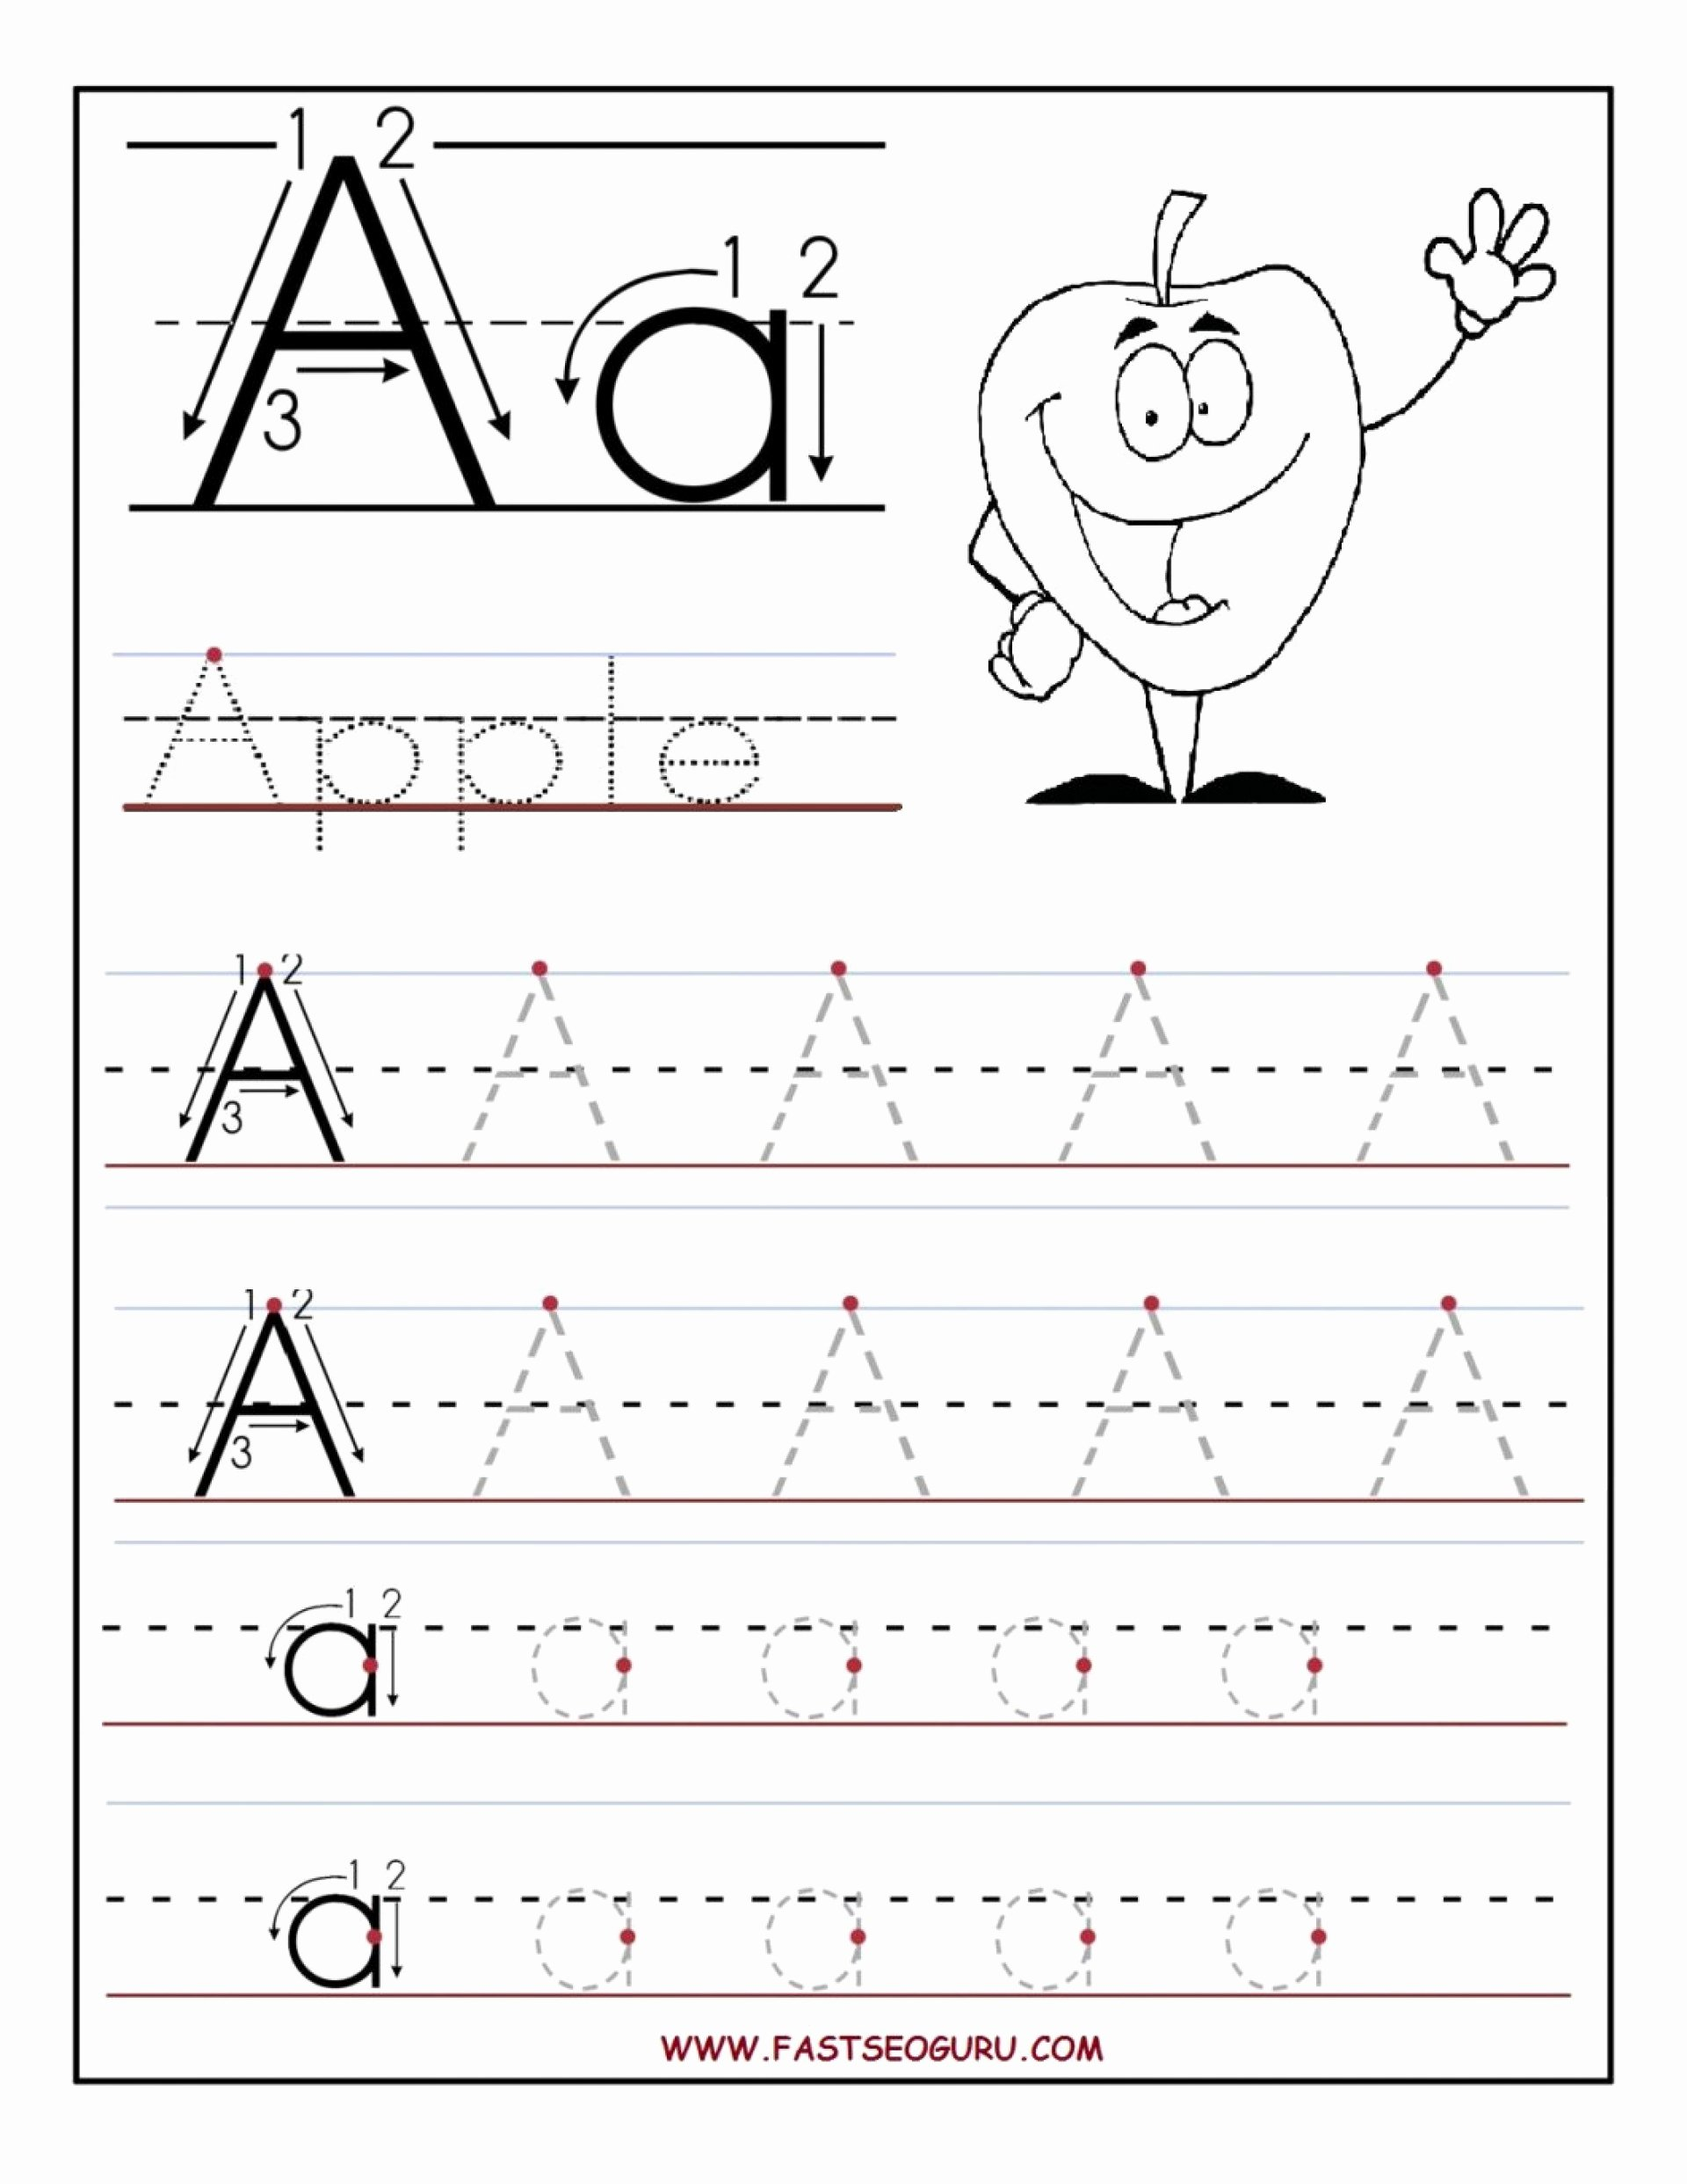 worksheet trace letters tracing worksheets for astounding preschool letter printable alphabetindergarten free learning pages multiplicationids printables workbooks earth